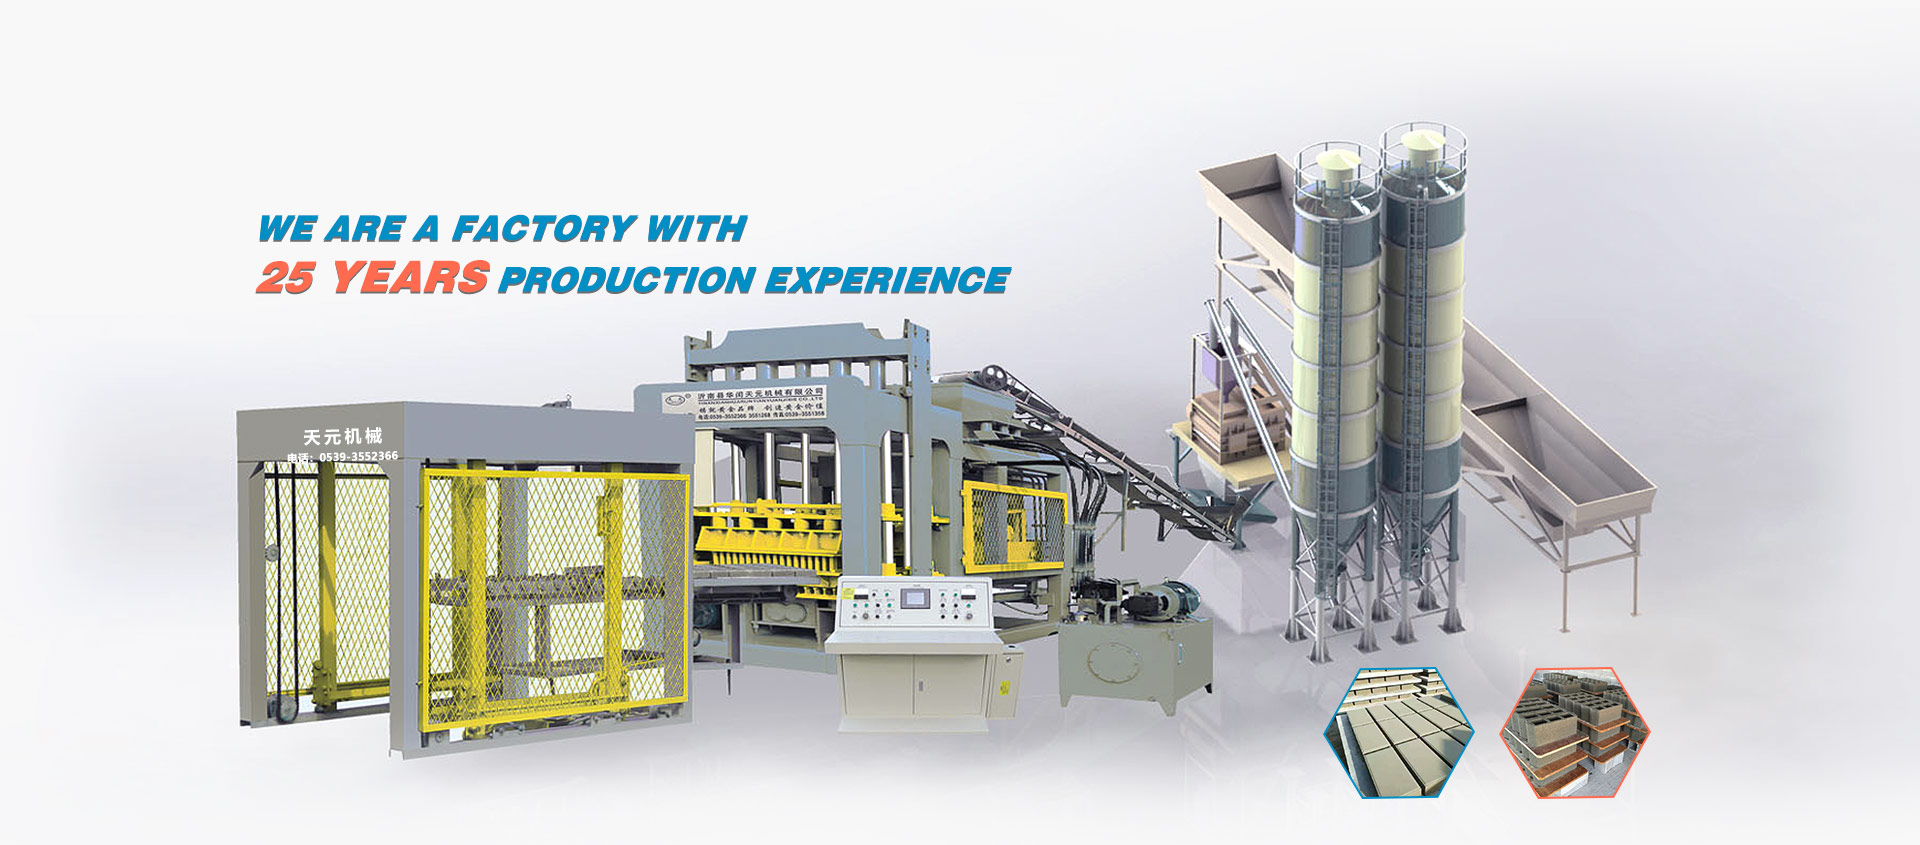 We are a factory with  25 years production experience